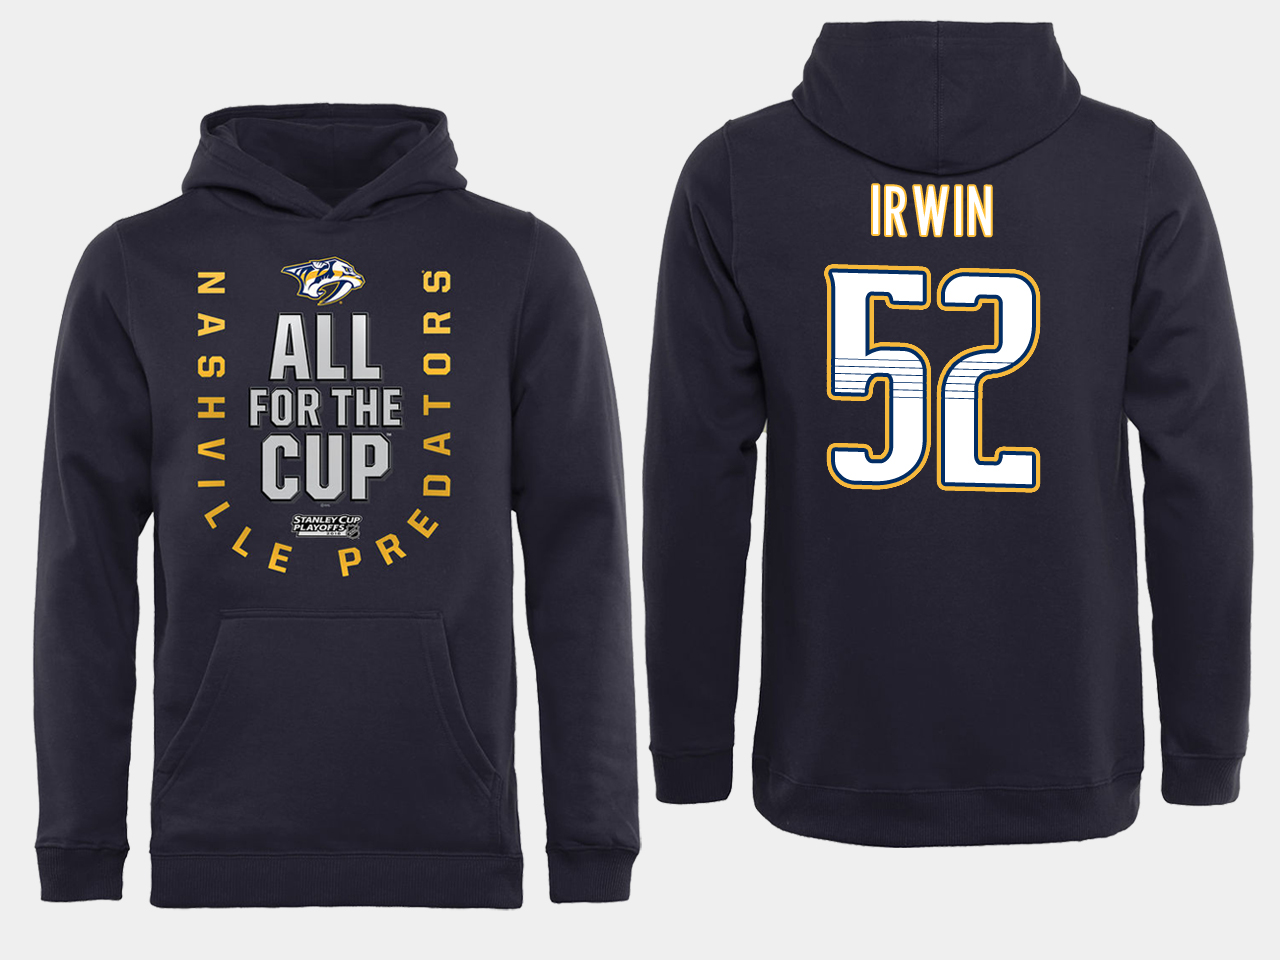 Men NHL Adidas Nashville Predators 52 Irwin black ALL for the Cup hoodie